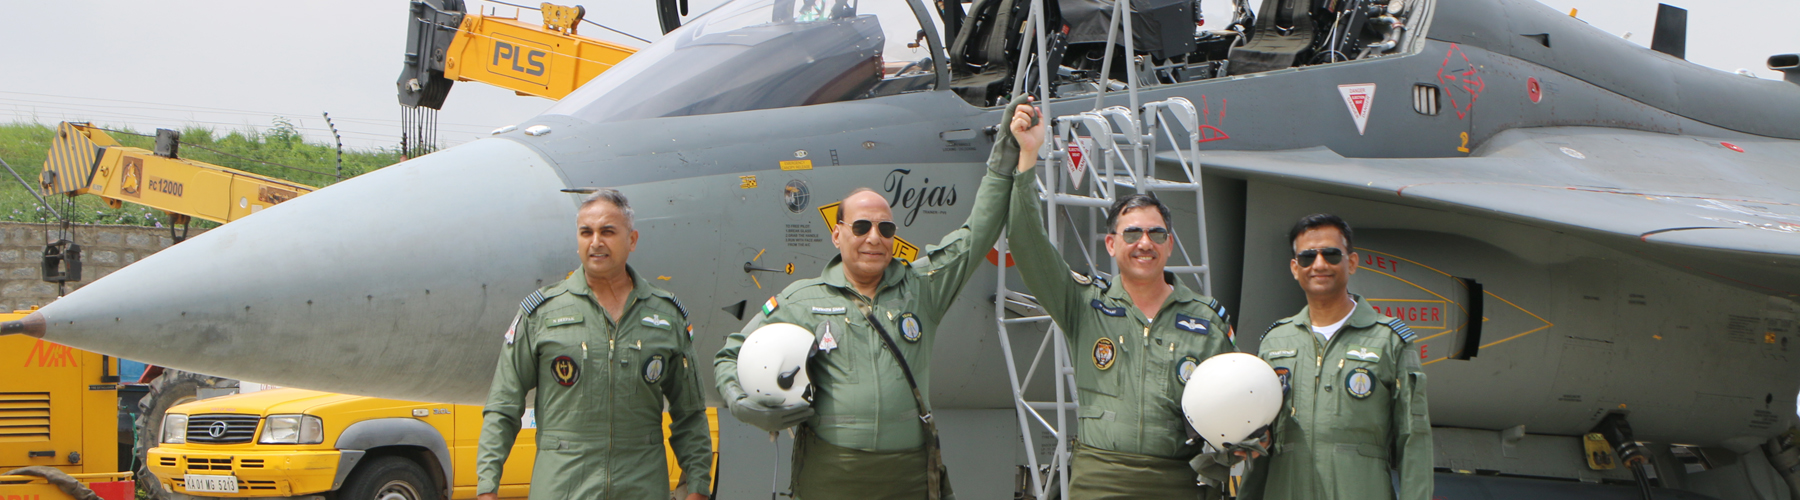 Raksha Mantri Shri Rajnath Singh after his maiden sortie in LCA Tejas with Air Vice Marshal Narmdeshwar Tiwari at HAL Airport, Bengaluru on Thursday, September 19, 2019